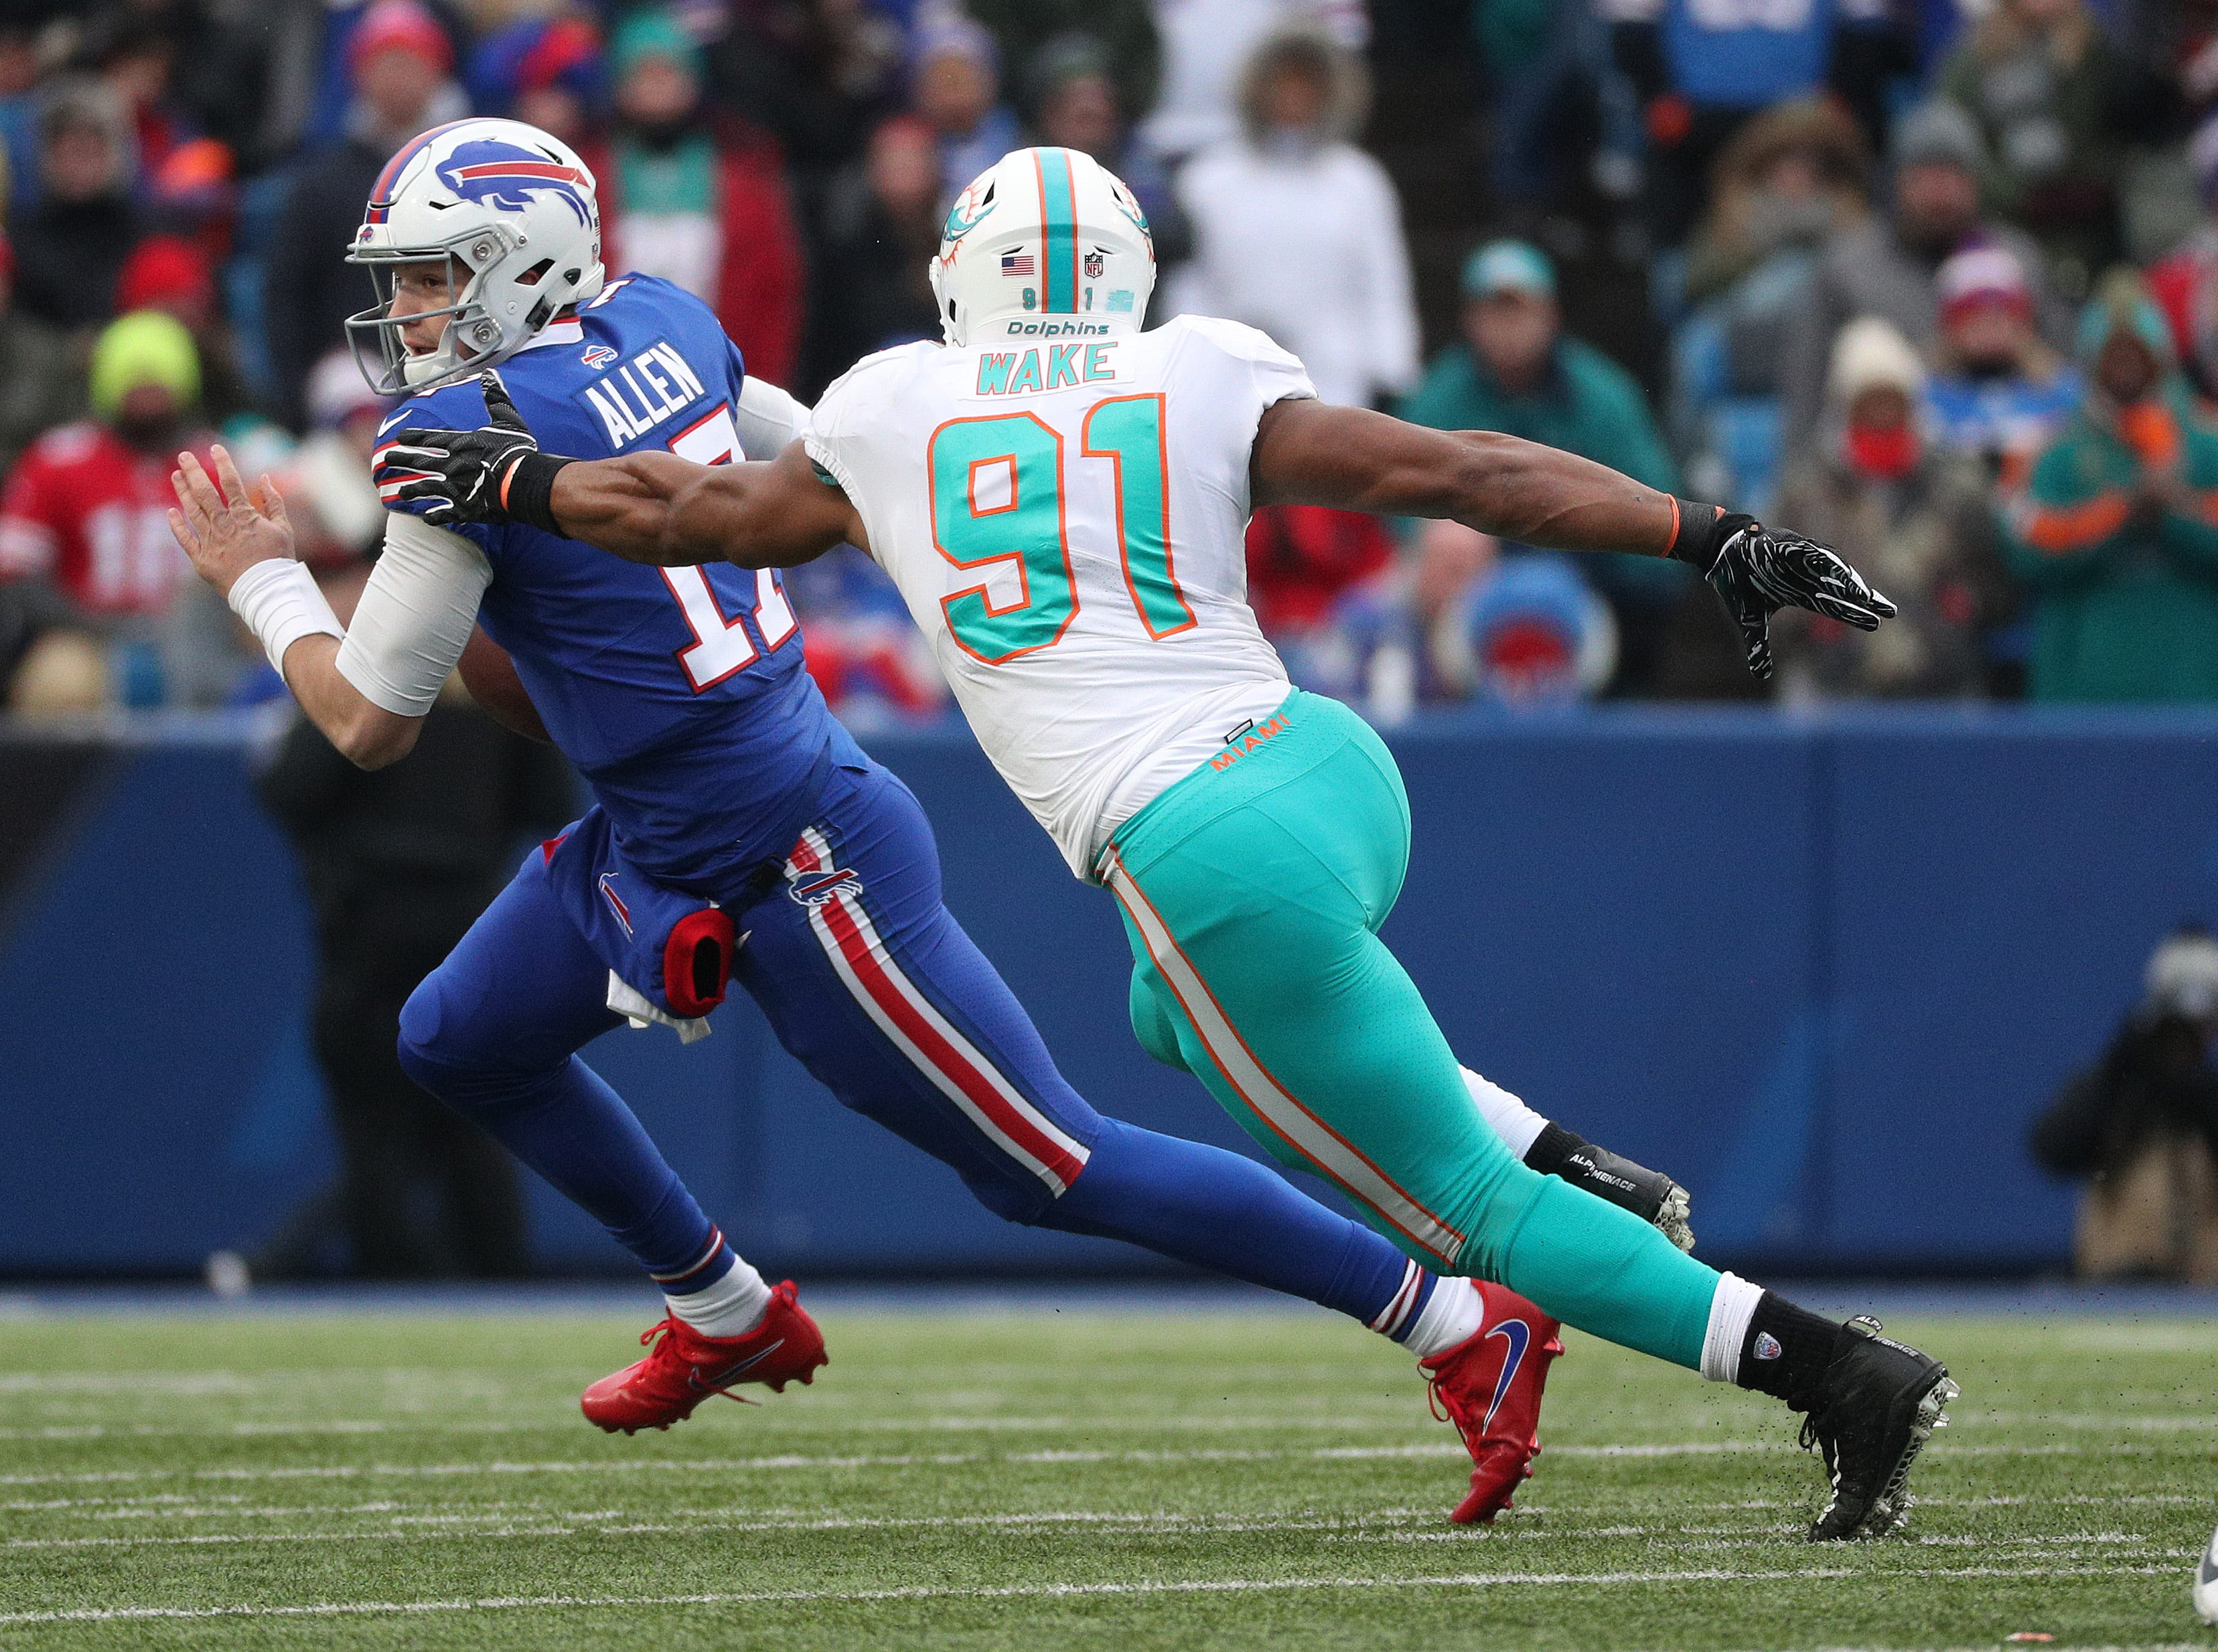 Bills quarterback Josh Allen rolls away from Dolphins Cameron Wake.